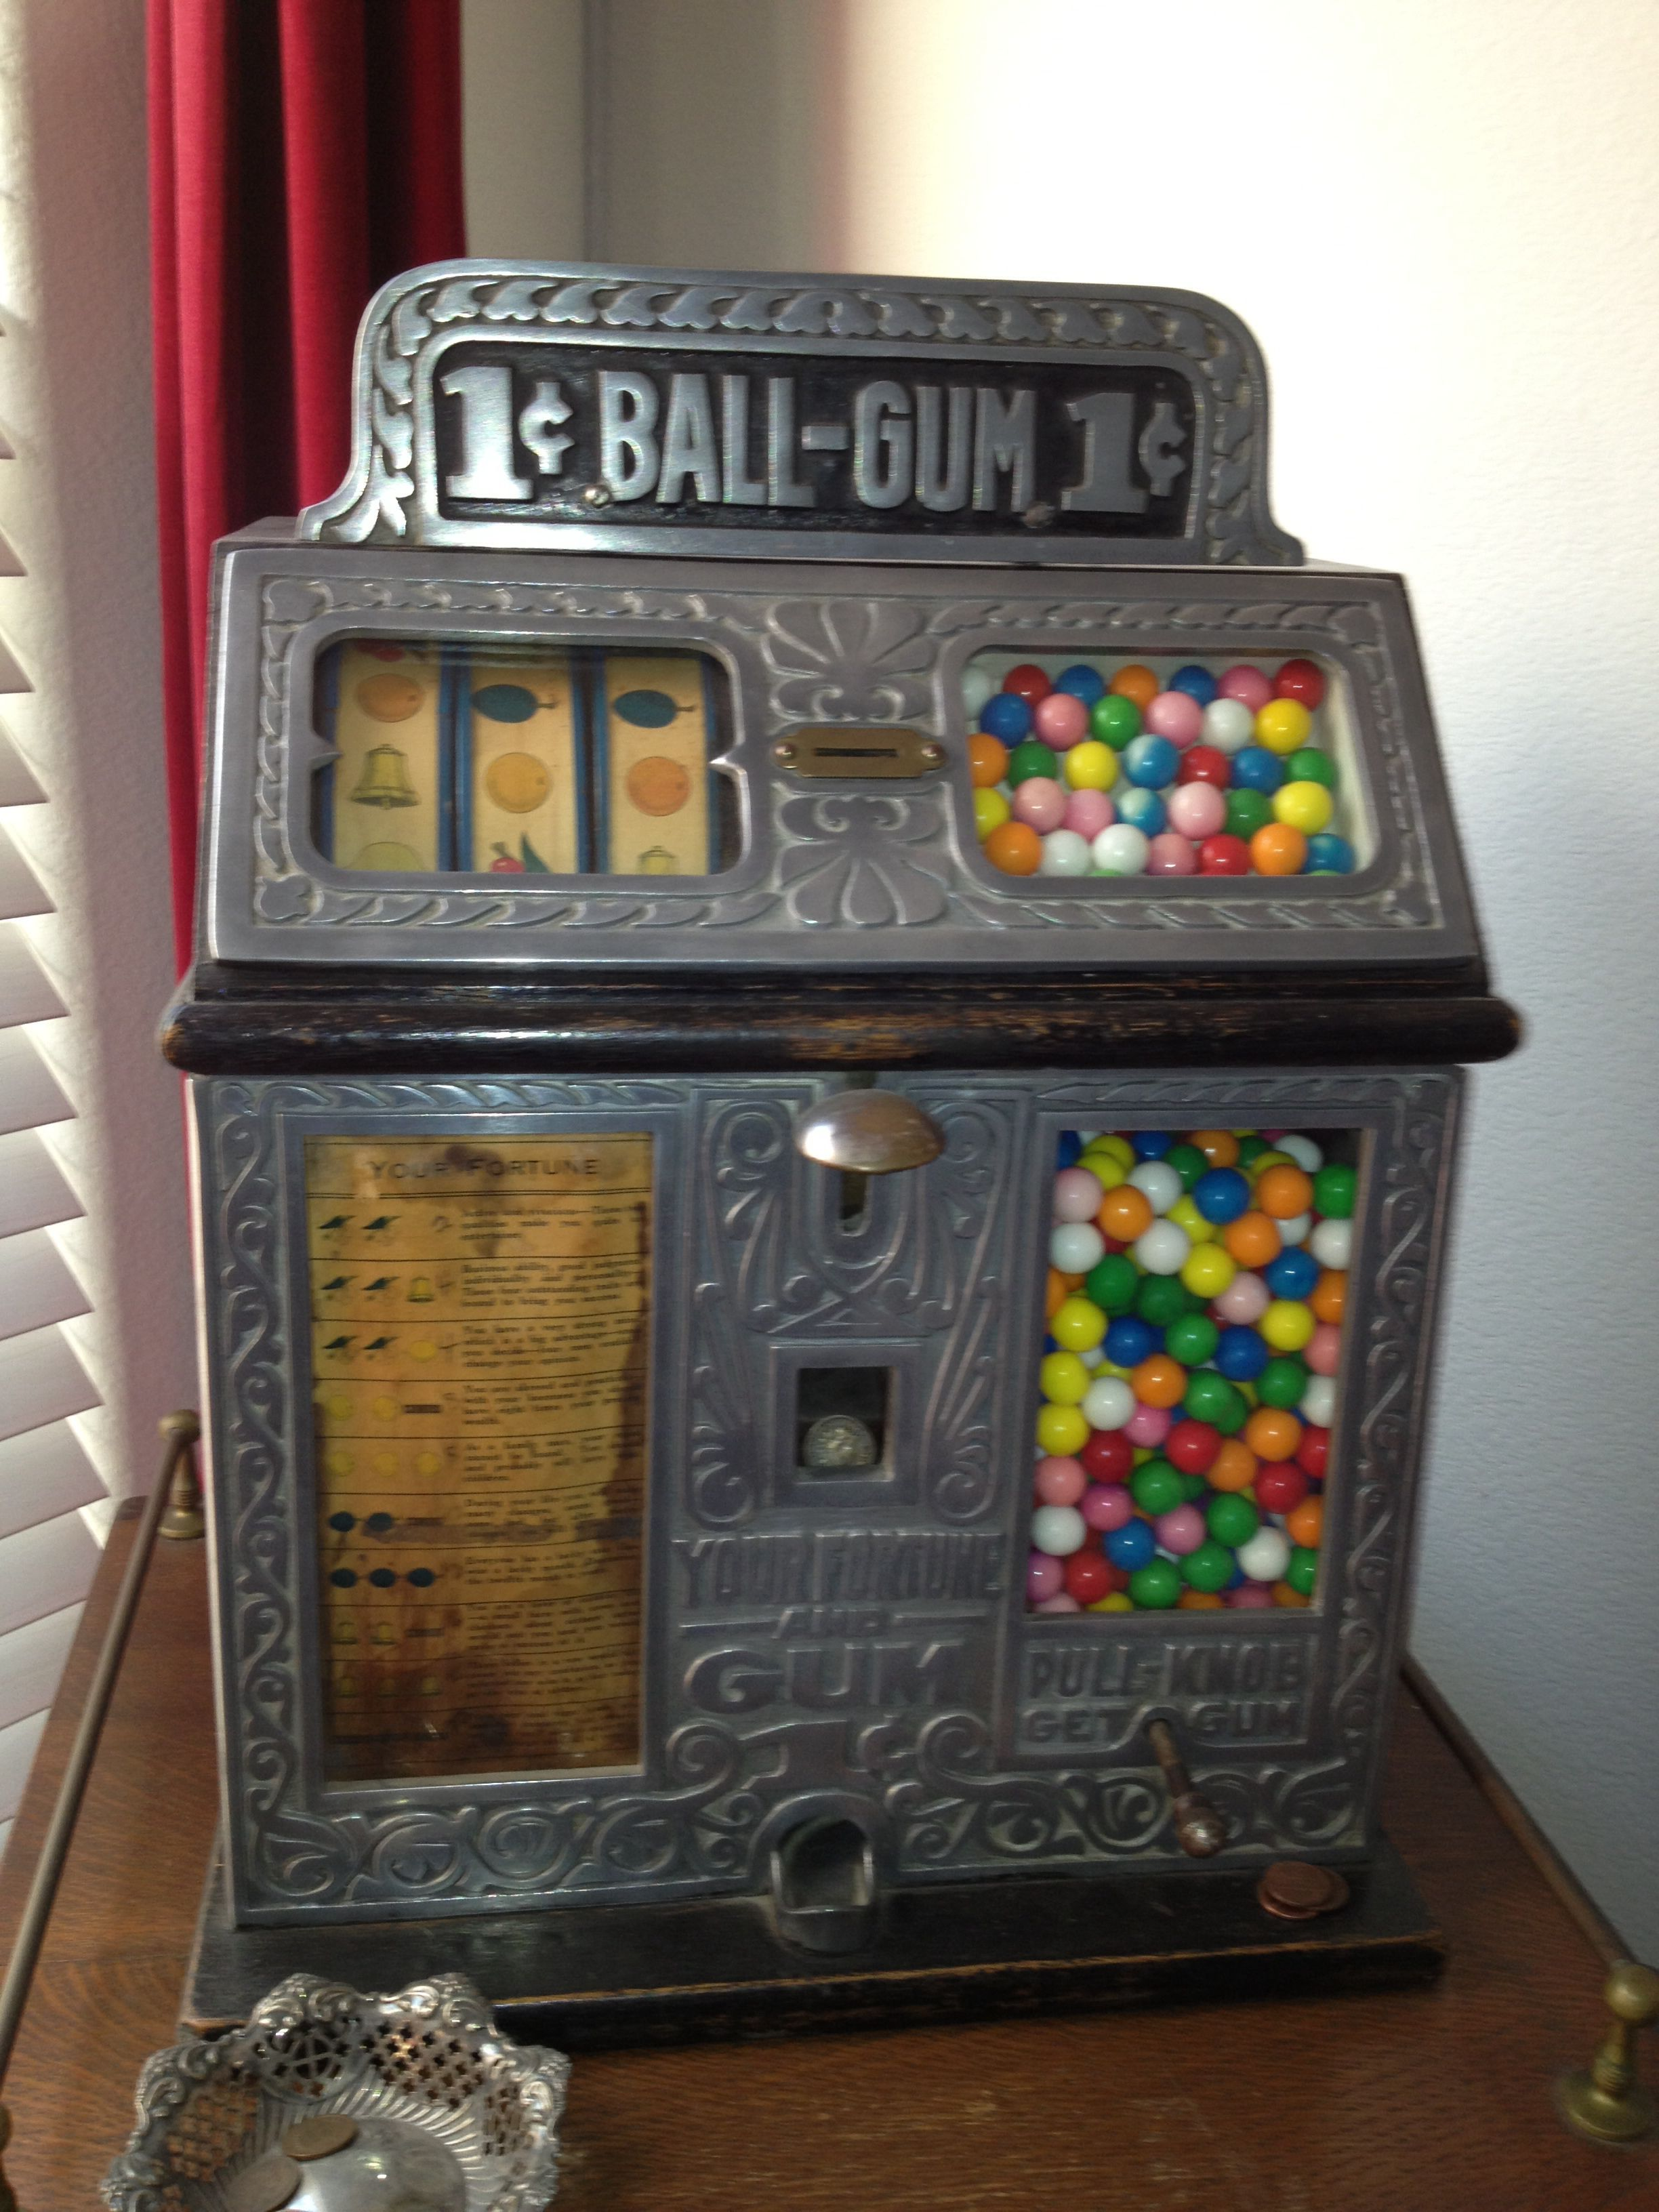 Country Store Slot/Gum Machine Antiques Gumball